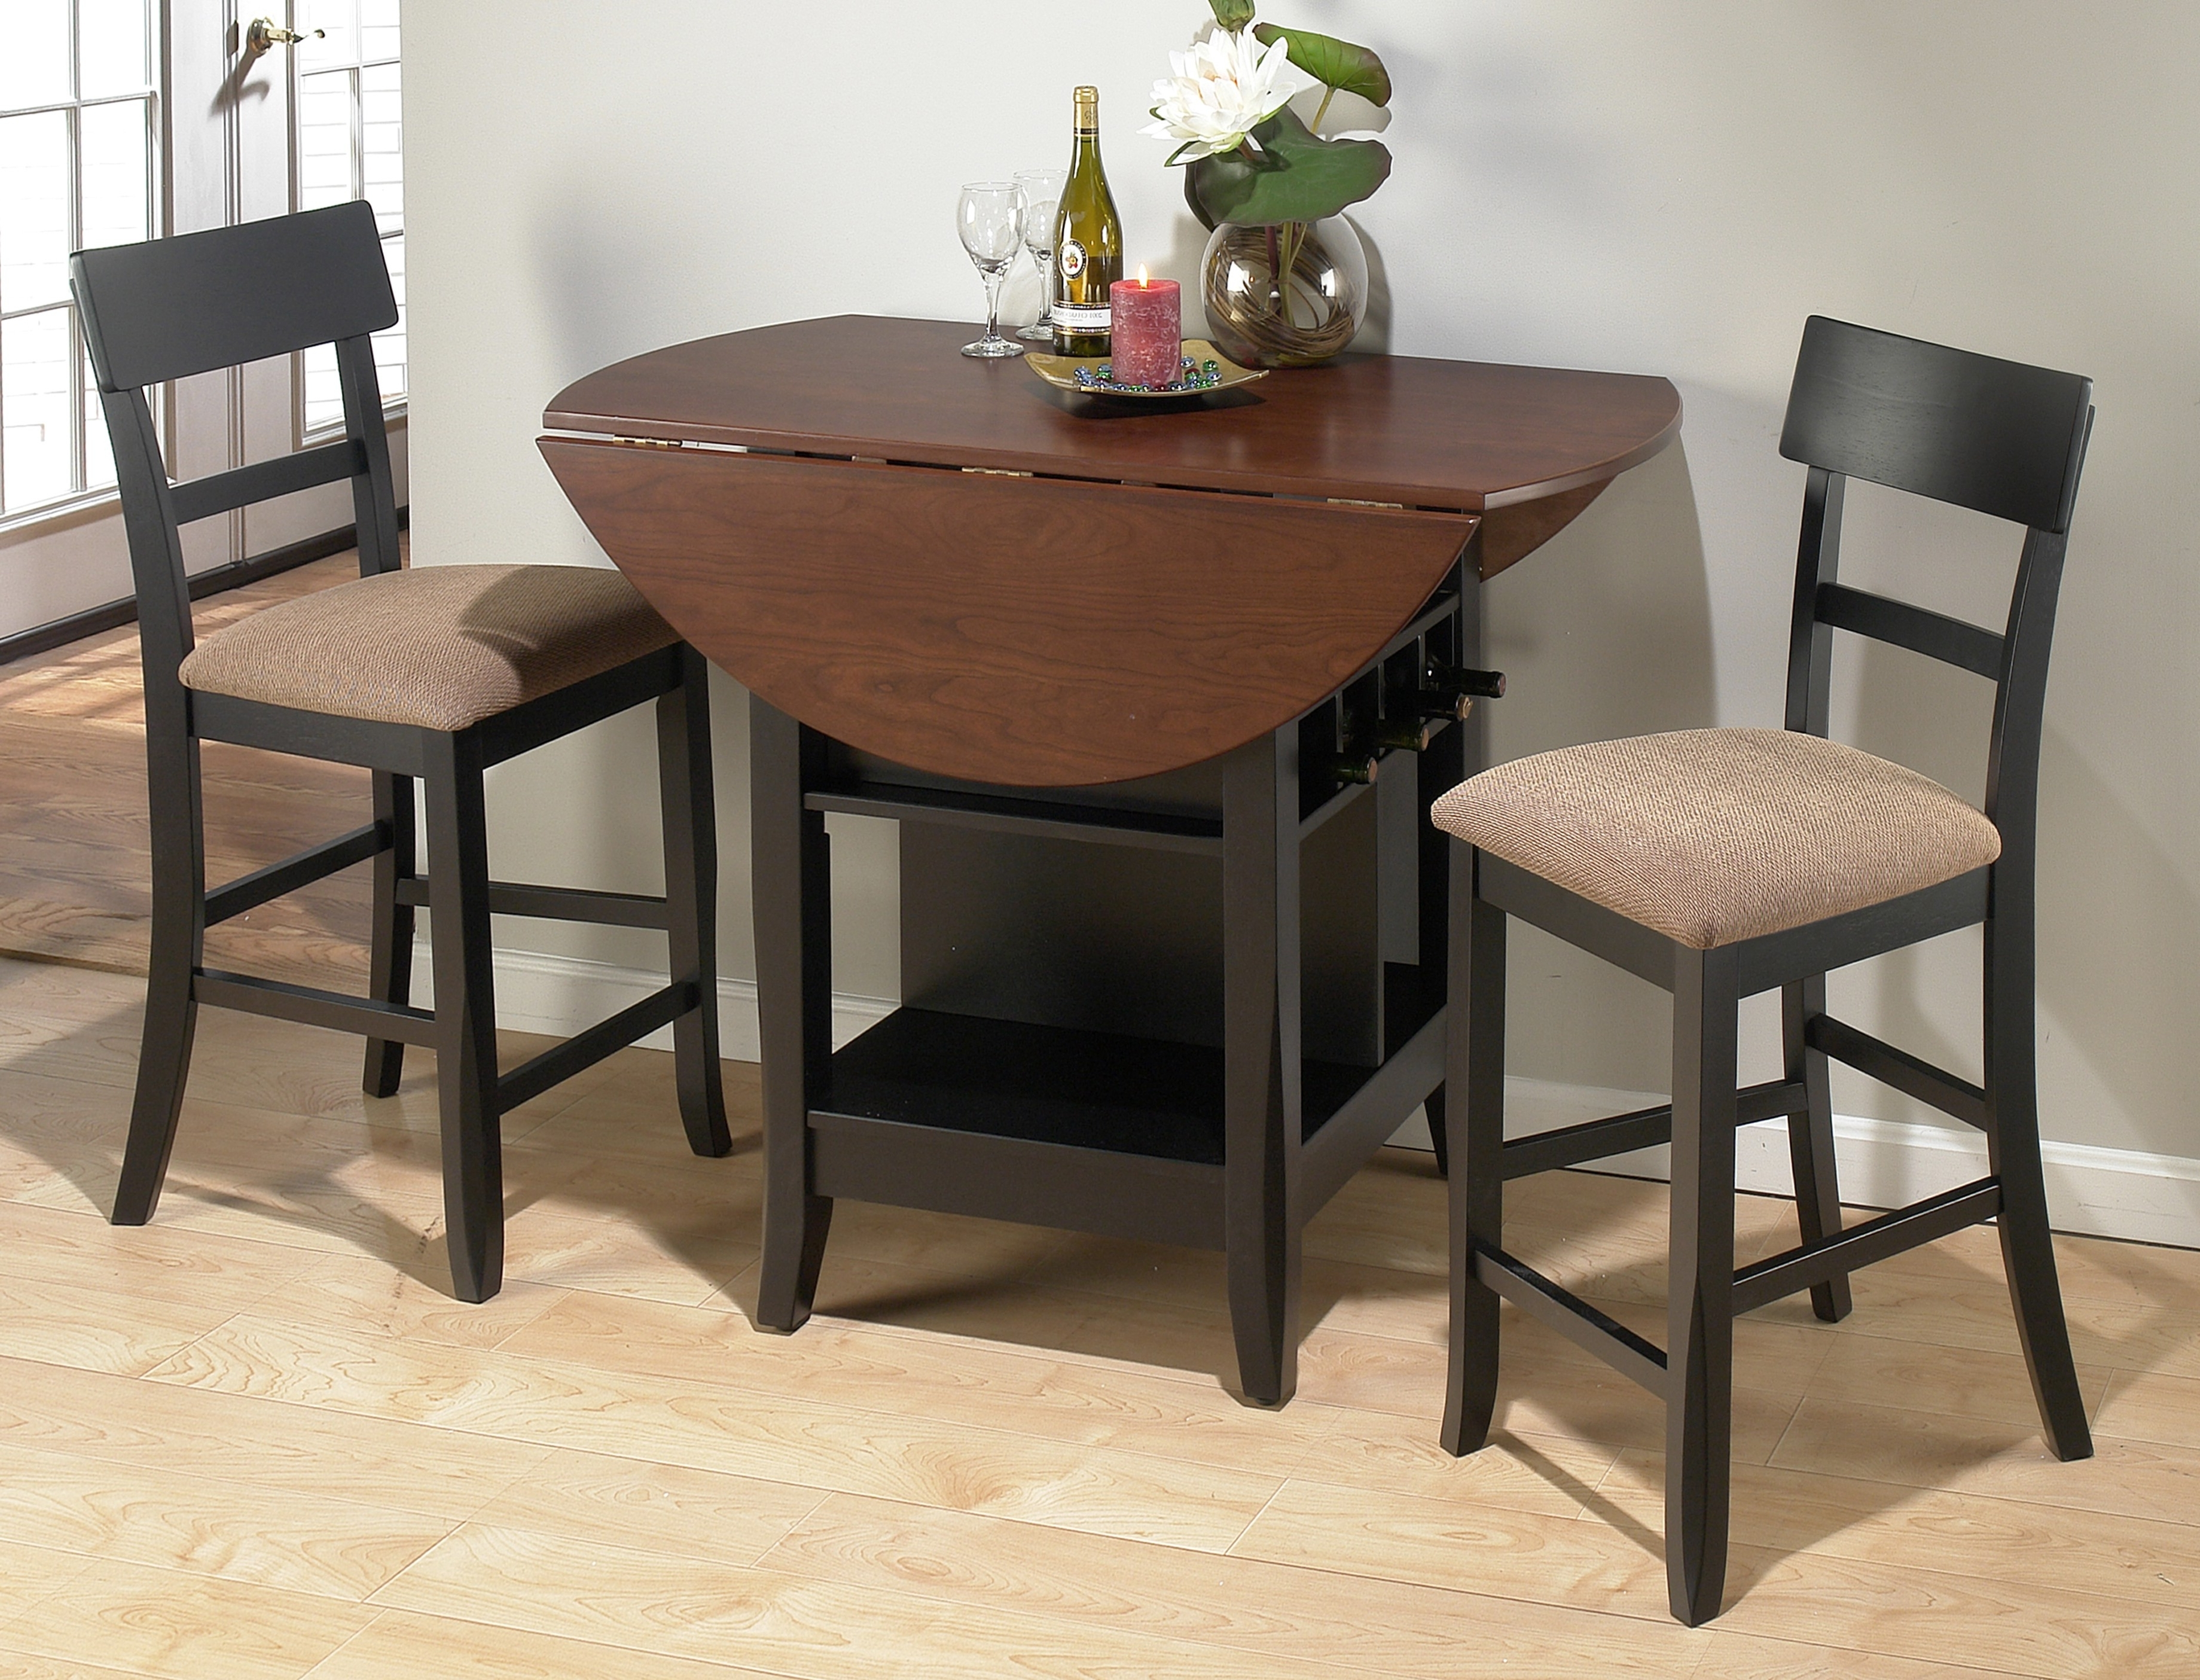 Most Popular Dining Room Kitchen Table Sets For Small Areas Small Dining Table Throughout Compact Dining Tables And Chairs (View 15 of 25)